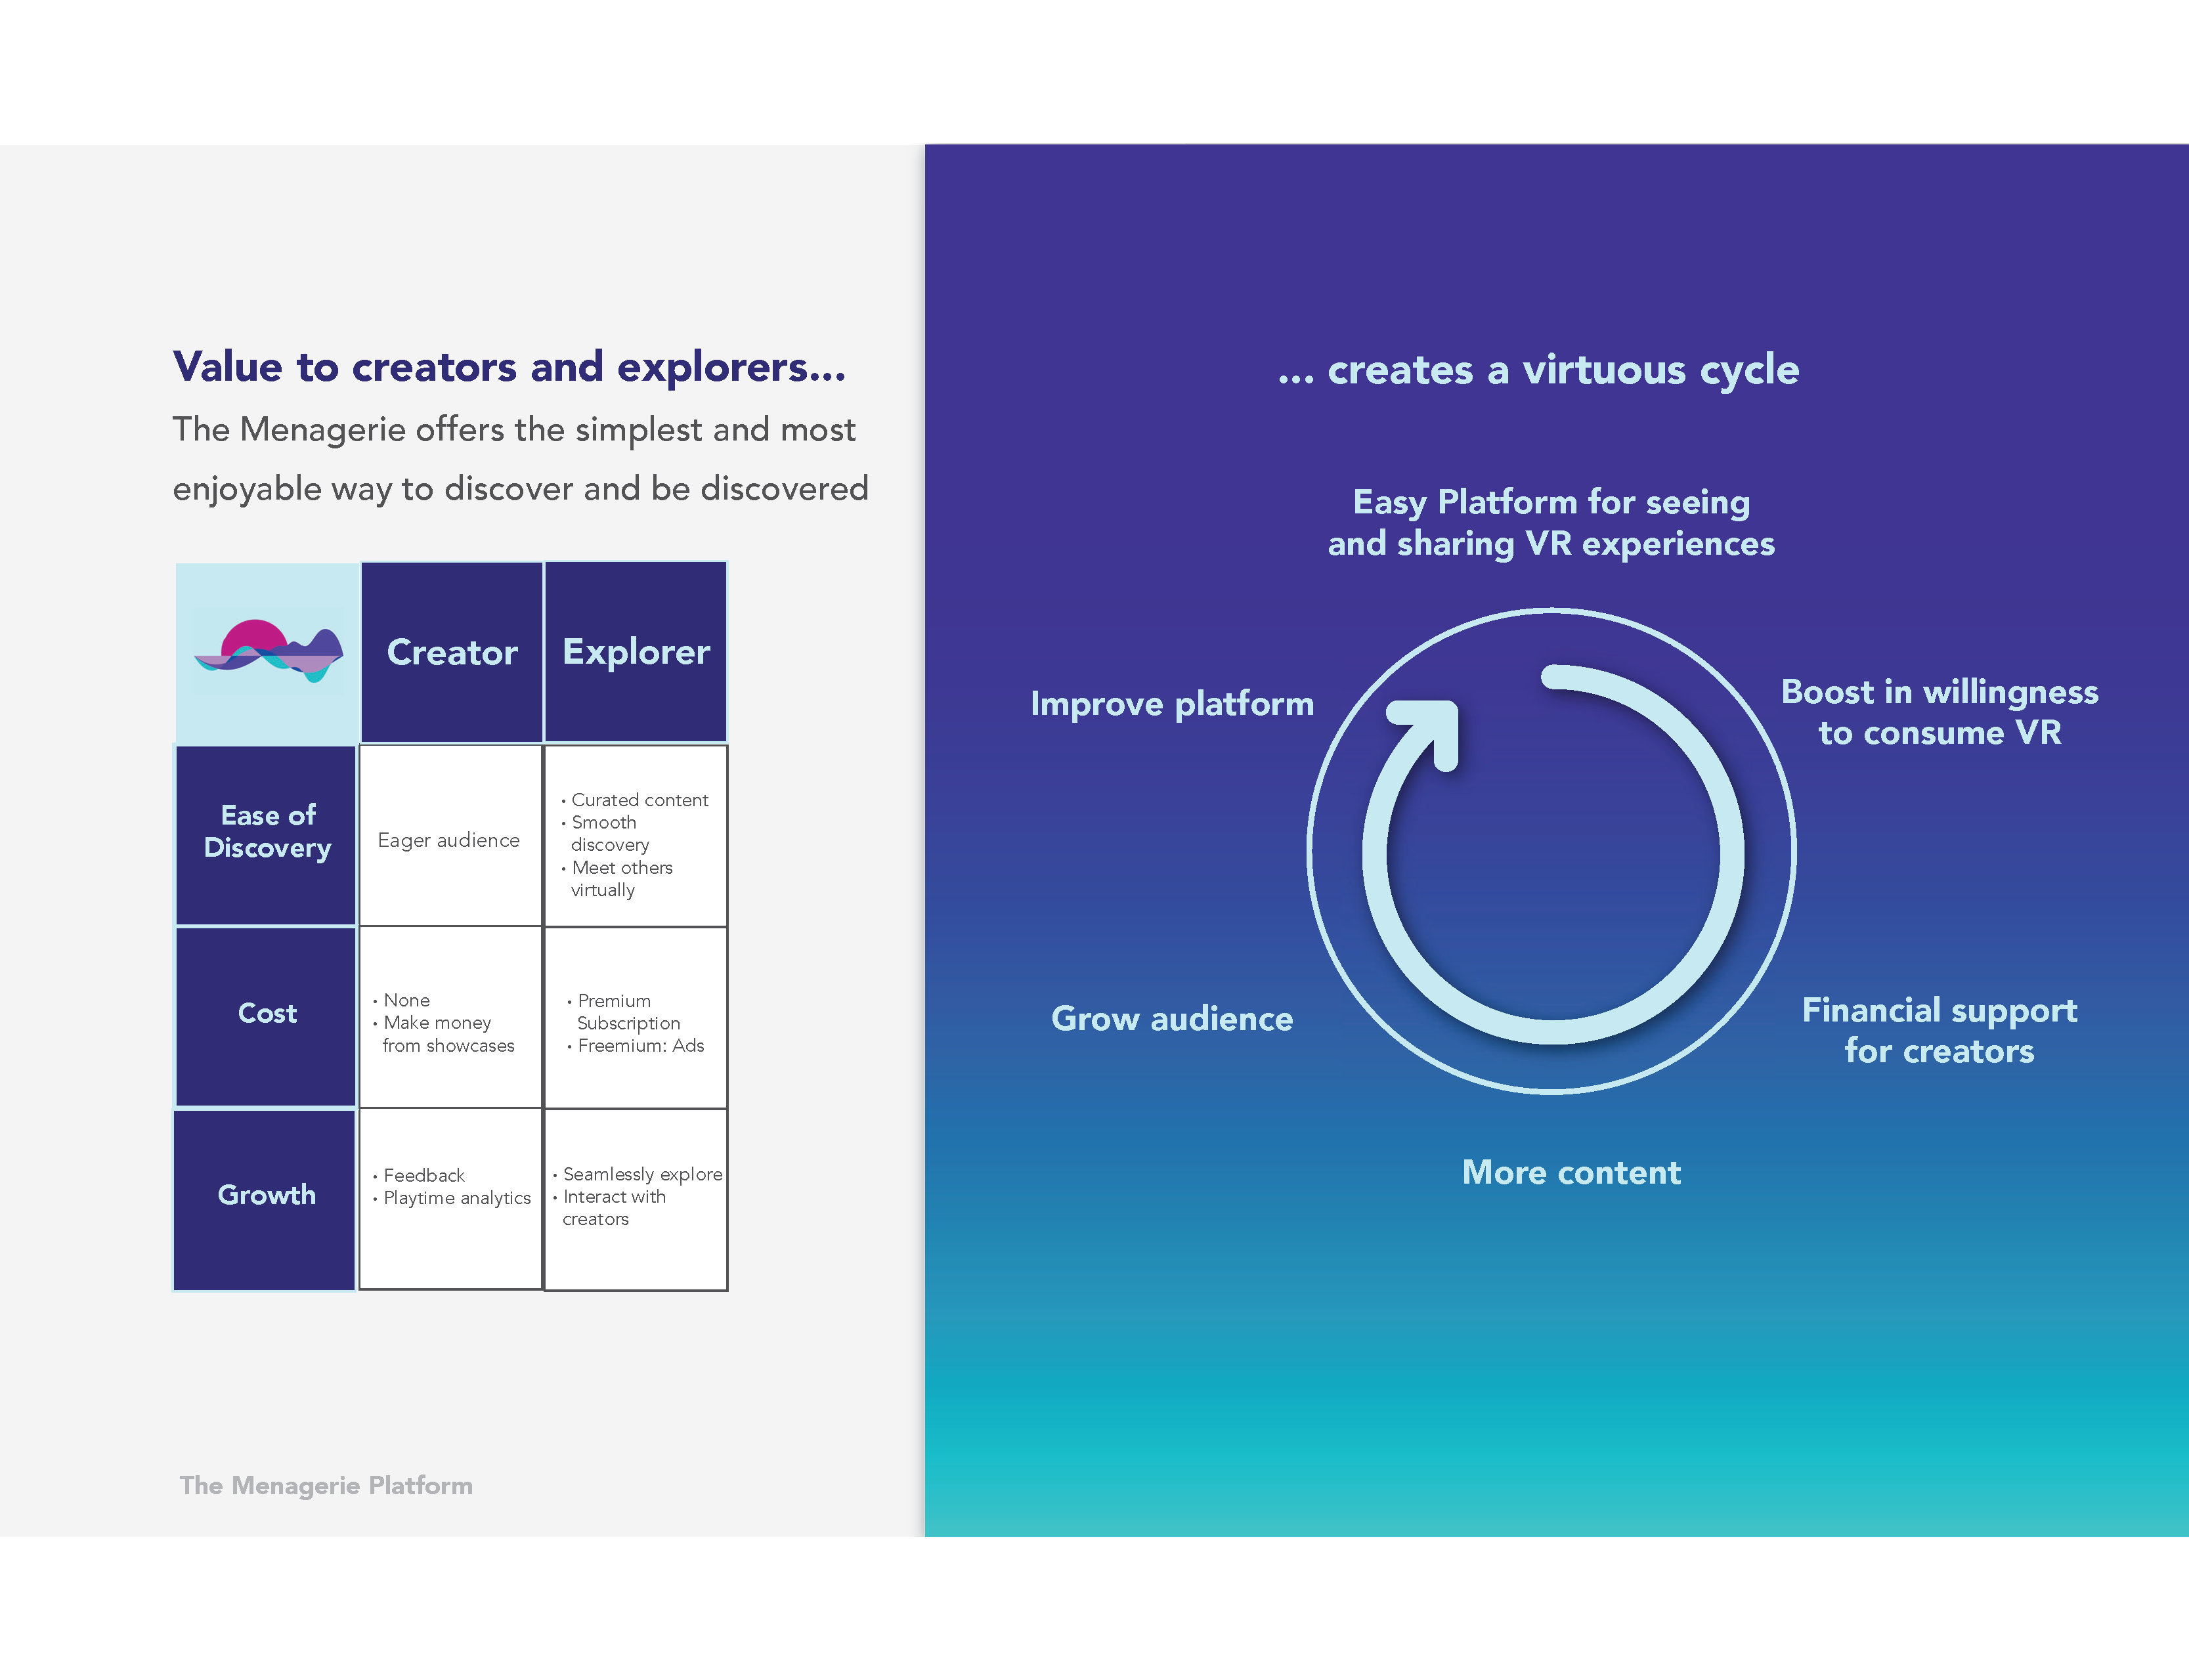 Table and diagram explaining the value to creators and explorers to show viable content strategy